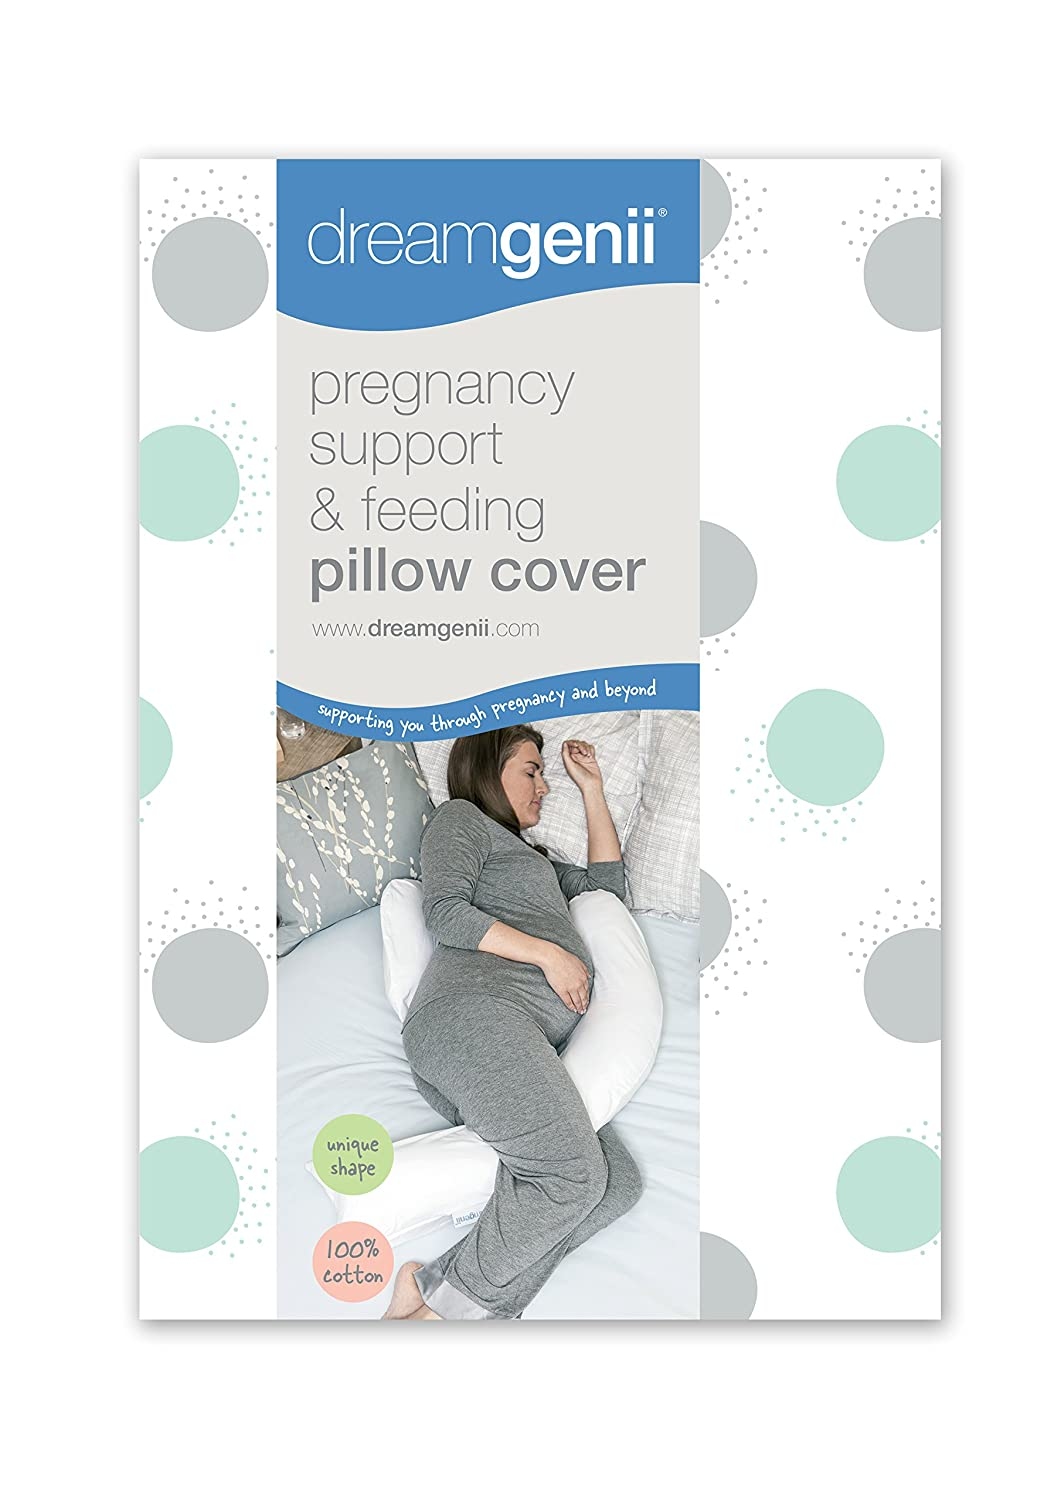 Dreamgenii Pregnancy Support and Feeding Pillow Cover, White Cotton Jersey TR2150-12